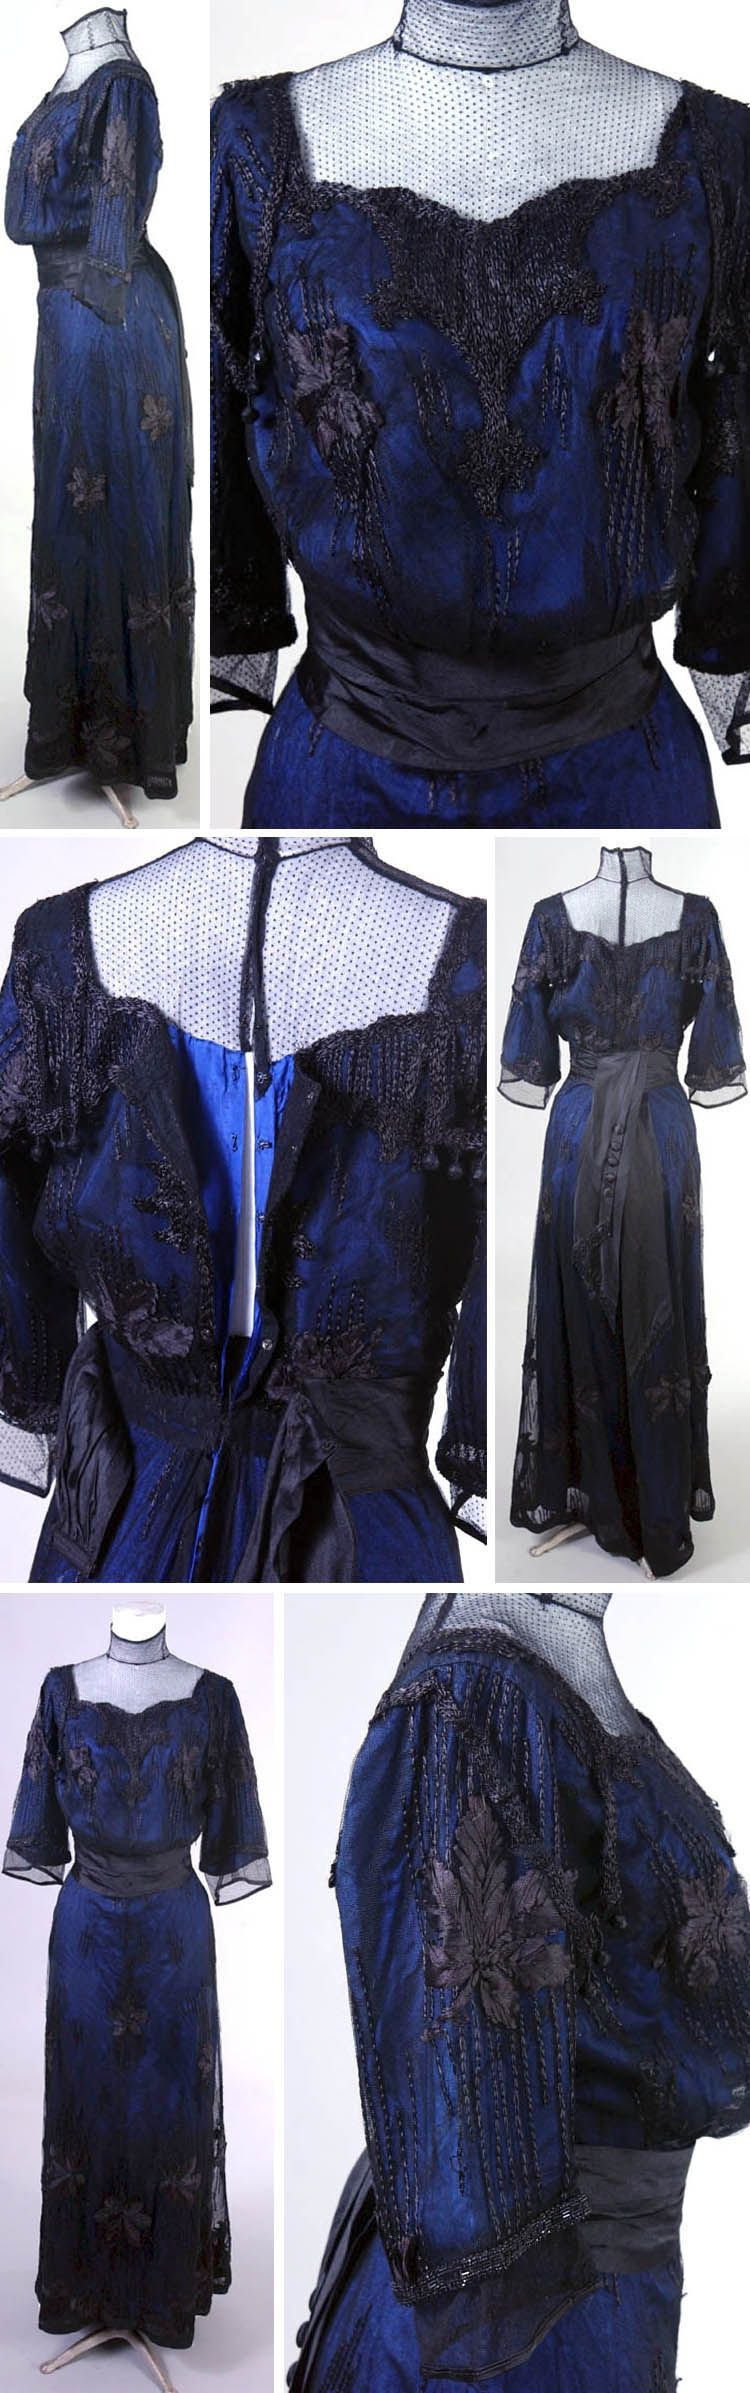 One-piece dress, 1900. Black & blue silk organza with silk lining. Embroidery in leaf motif on overlay. Dorothea June Grossbart (WSU) Historic Costume Collection, Wayne State Univ.